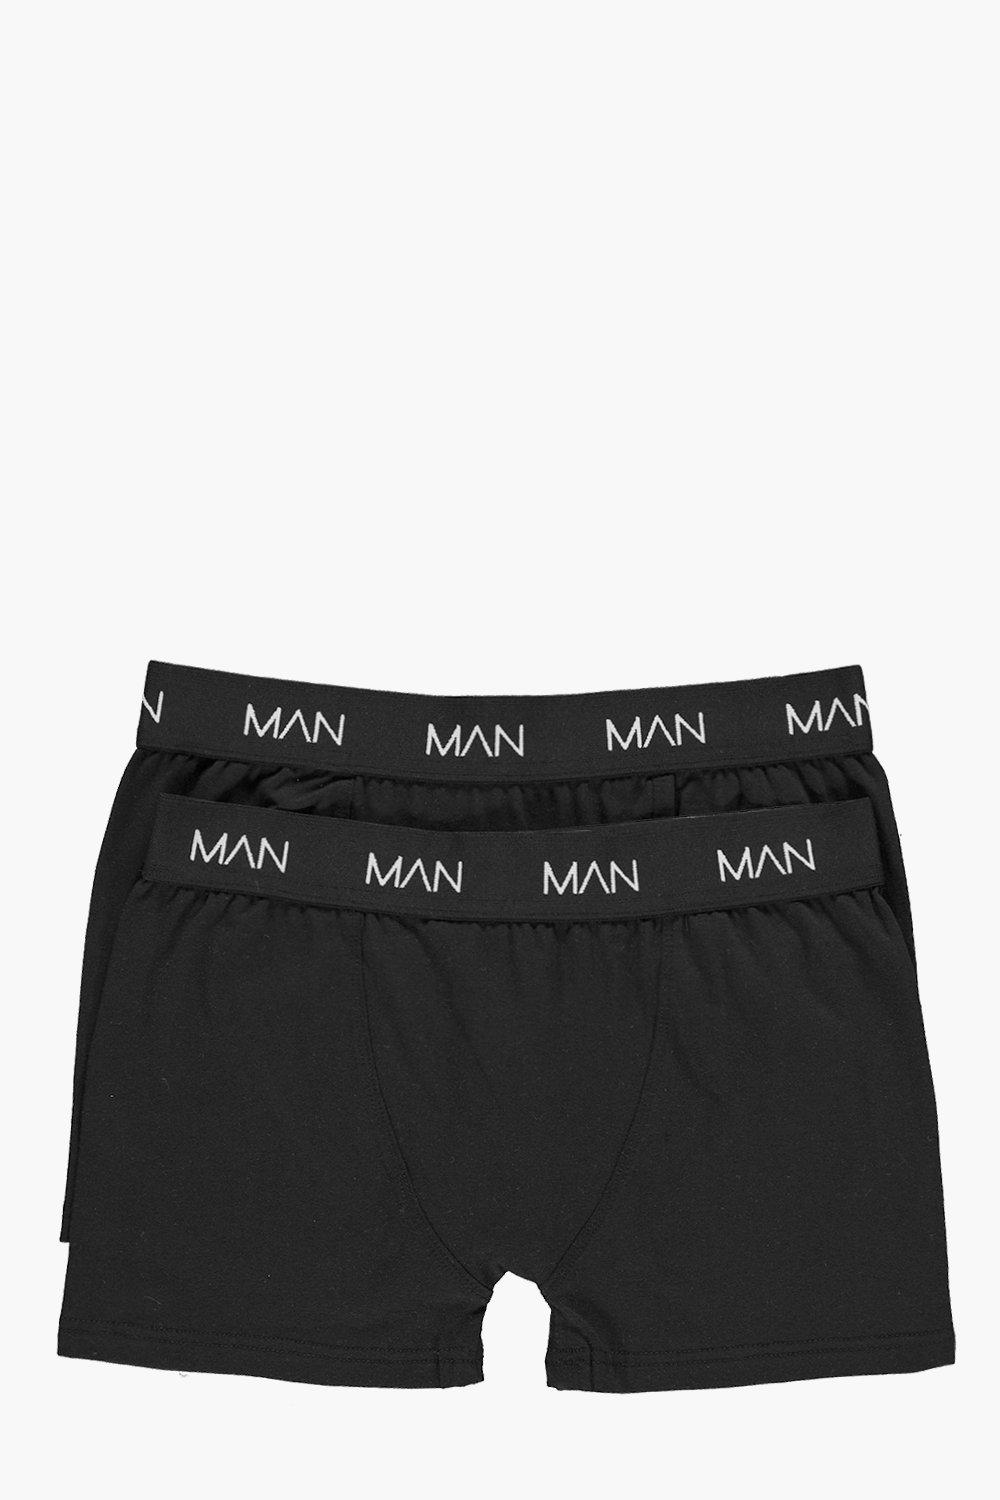 Twin Pack Boohoo MAN Boxers